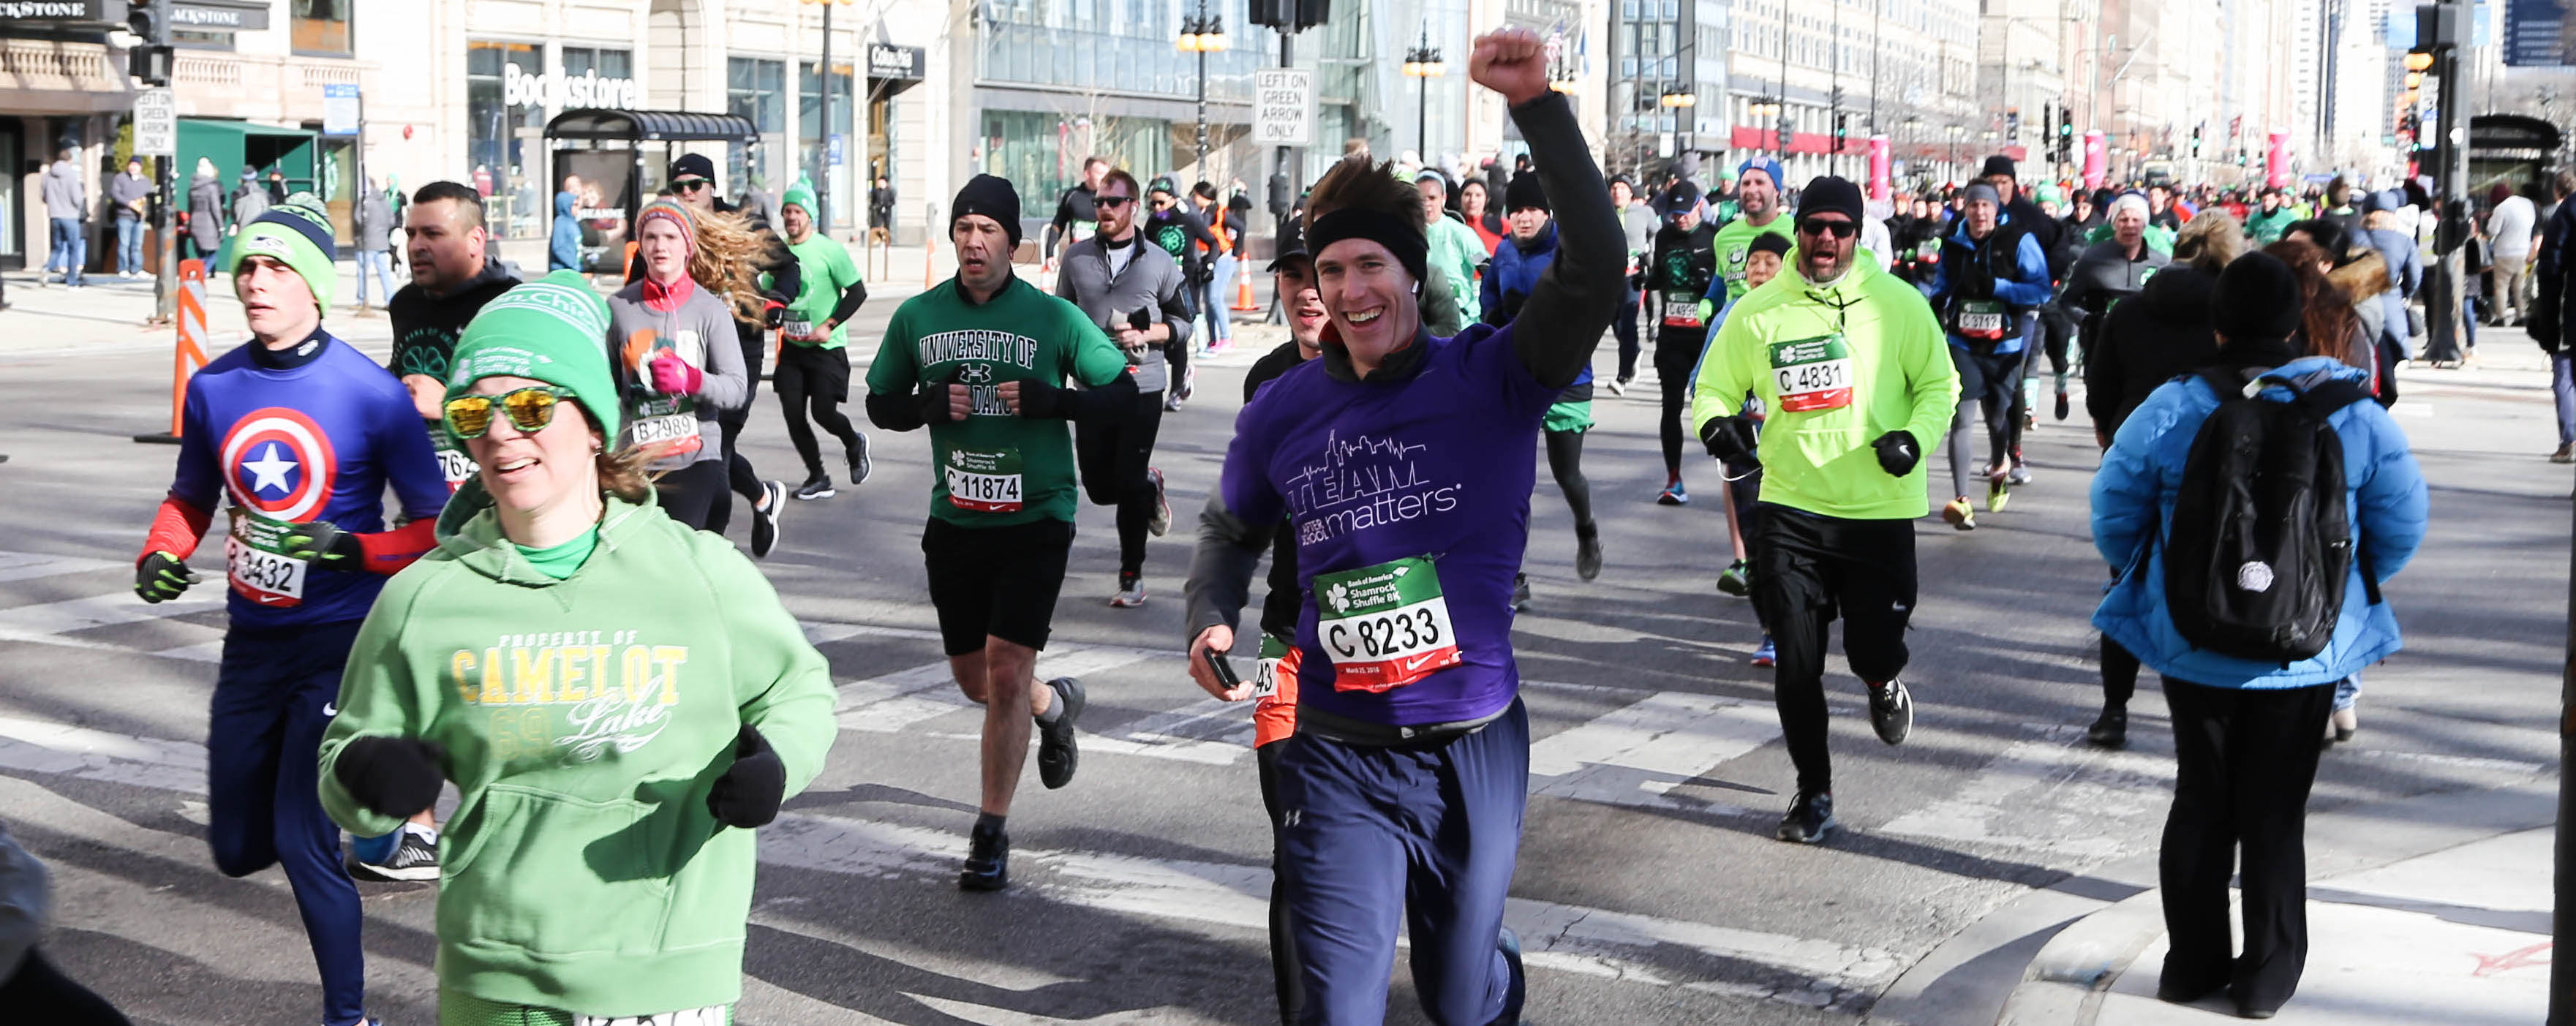 <h2>Thank you runners!</h2><div class='clear'></div><div class='gal_content'><p><p>Read about Team ASM at the Shamrock Shuffle!</p> <a href='http://www.afterschoolmatters.org/2018/03/2018-bank-of-america-shamrock-shuffle-8k/'>It's what matters > </a></p></div>